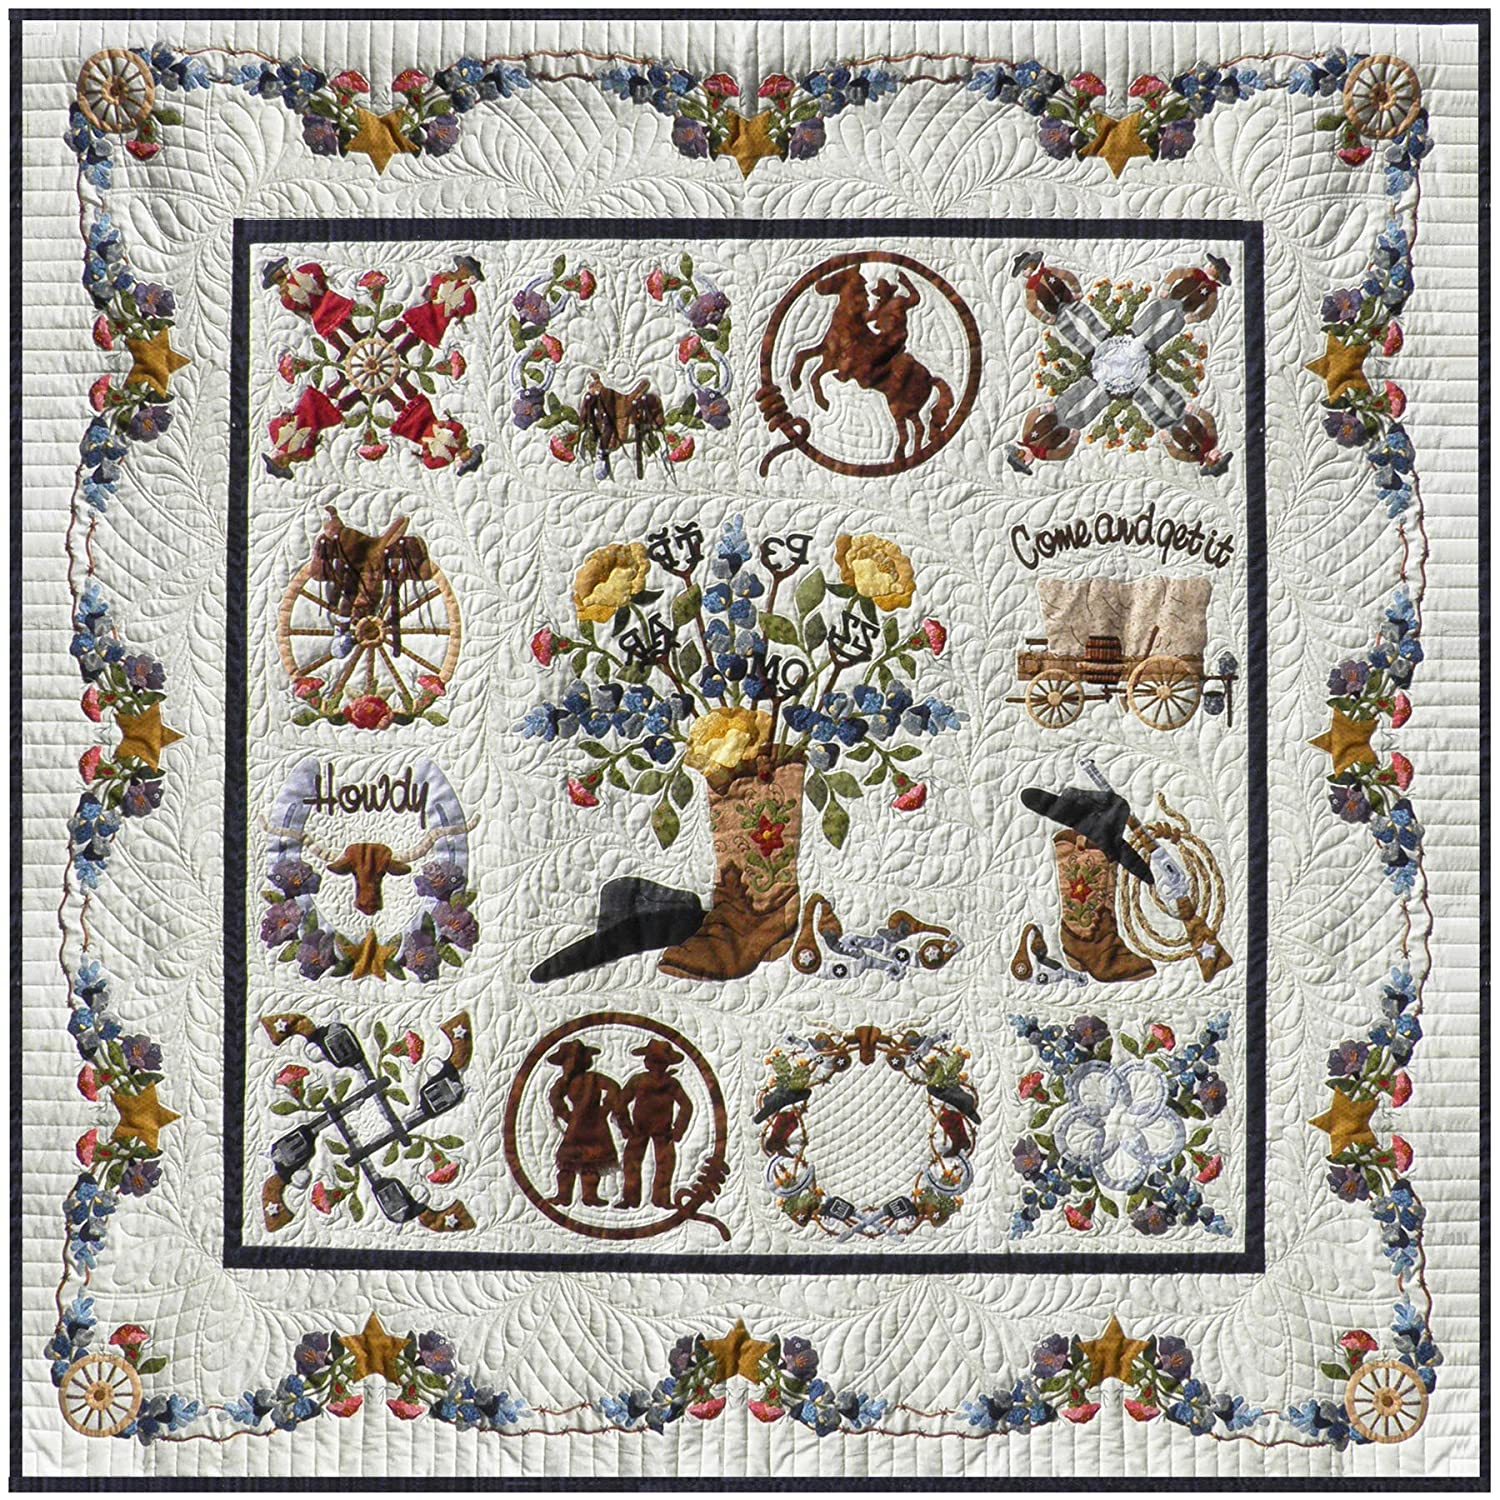 P3 Designs Baltimore Happy Trails BOM Applique Quilt Pattern Set Pearl P. Pereira P3-1901